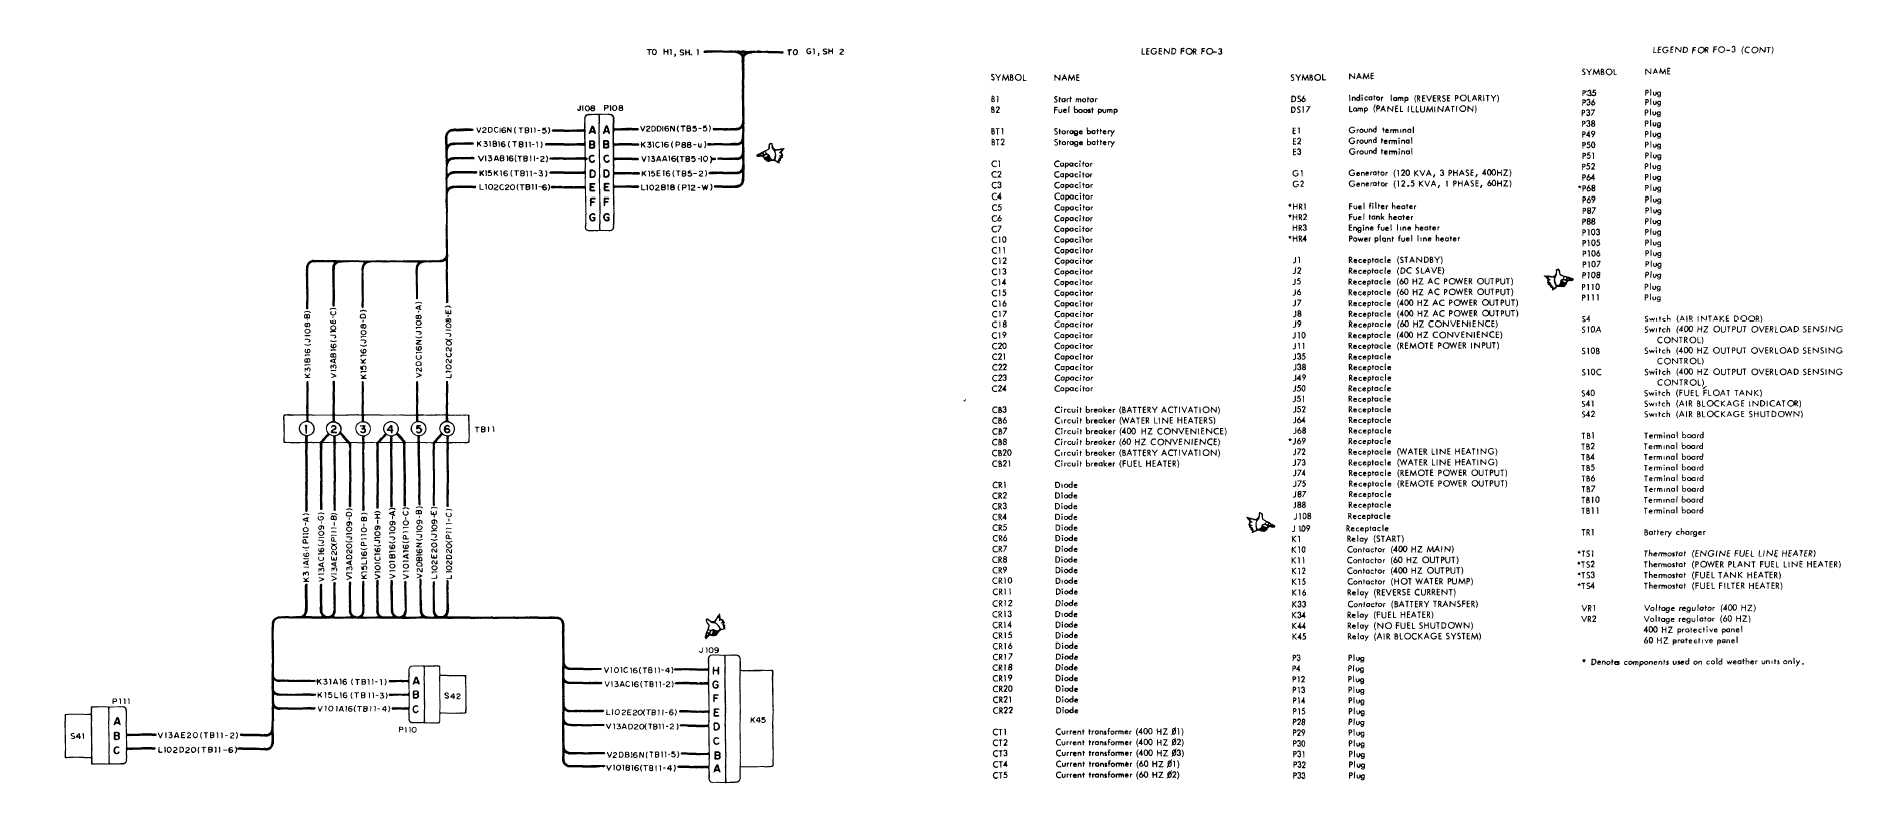 Figure Fo 3 3 Engine And Skid Assembly Wiring Diagram Sheet 3 Of 3